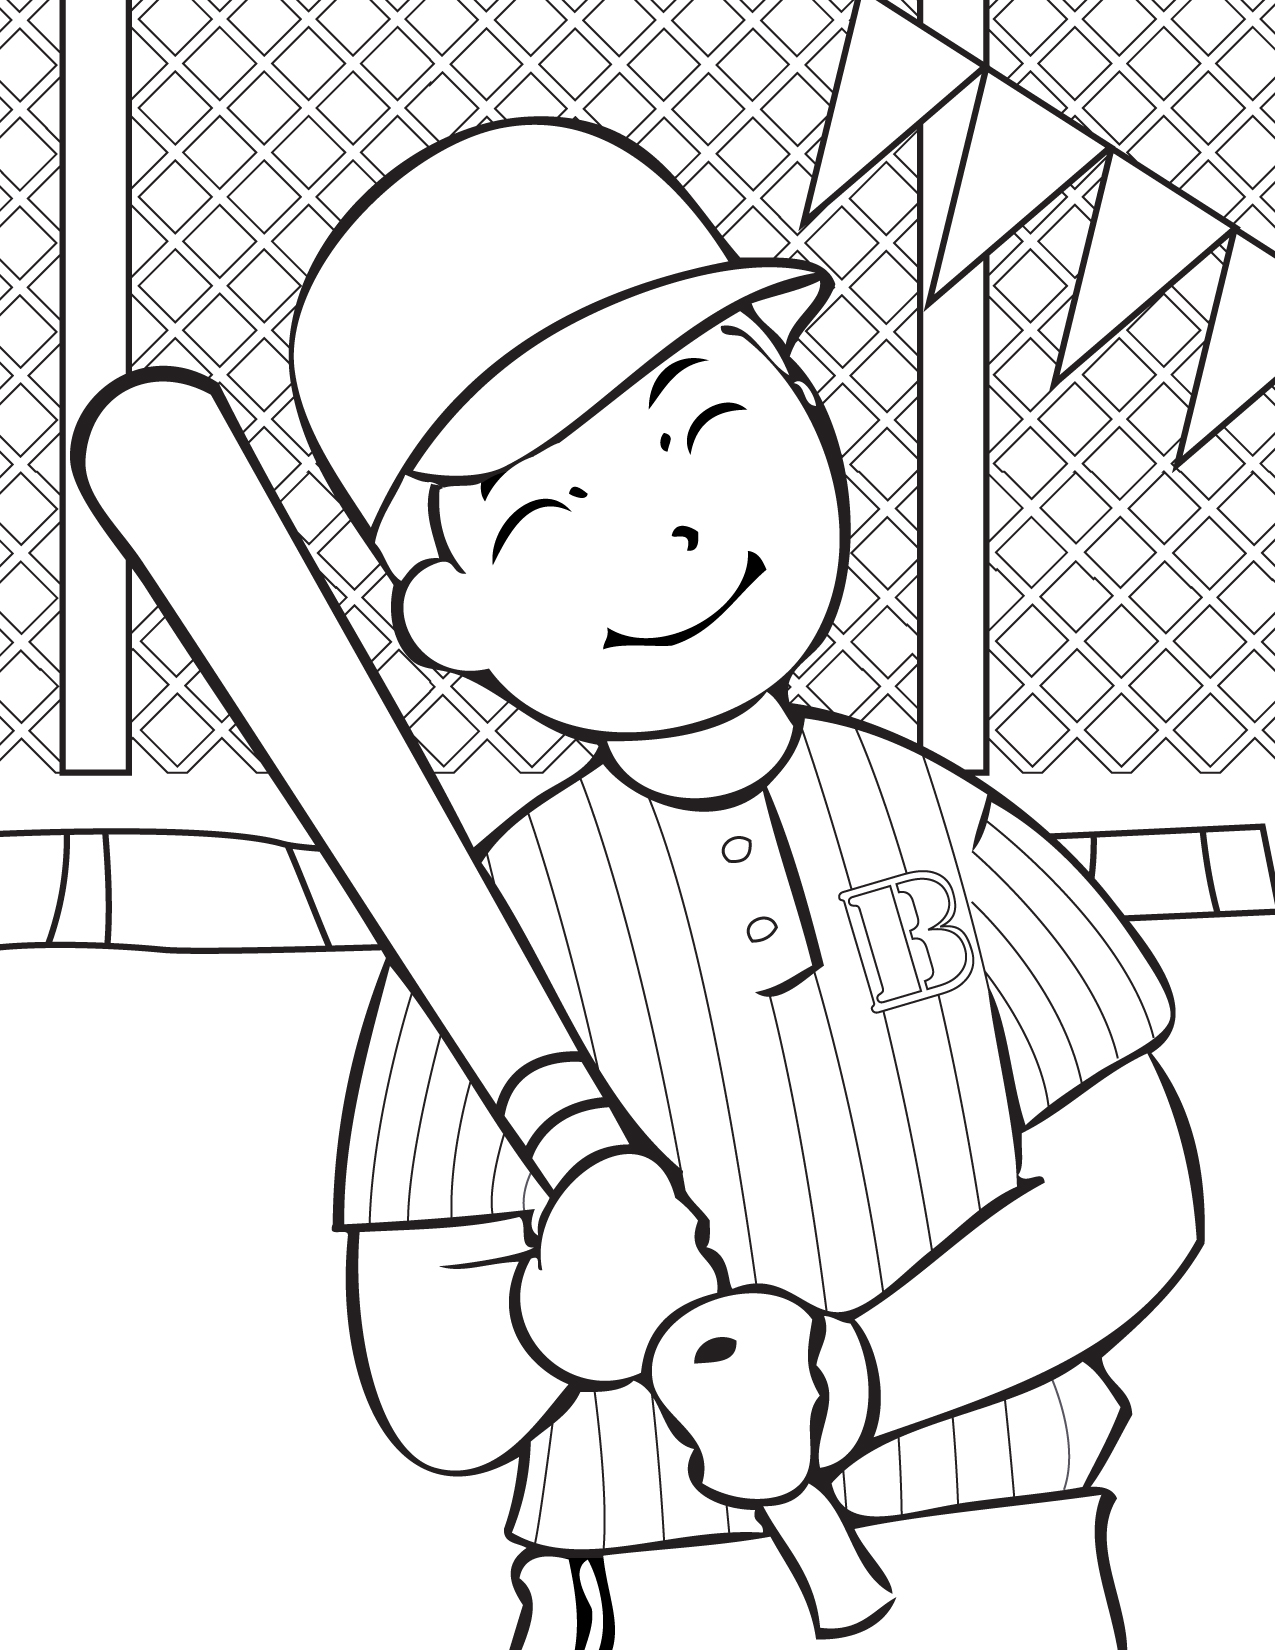 Free printable baseball coloring pages for kids best for Best coloring pages for kids